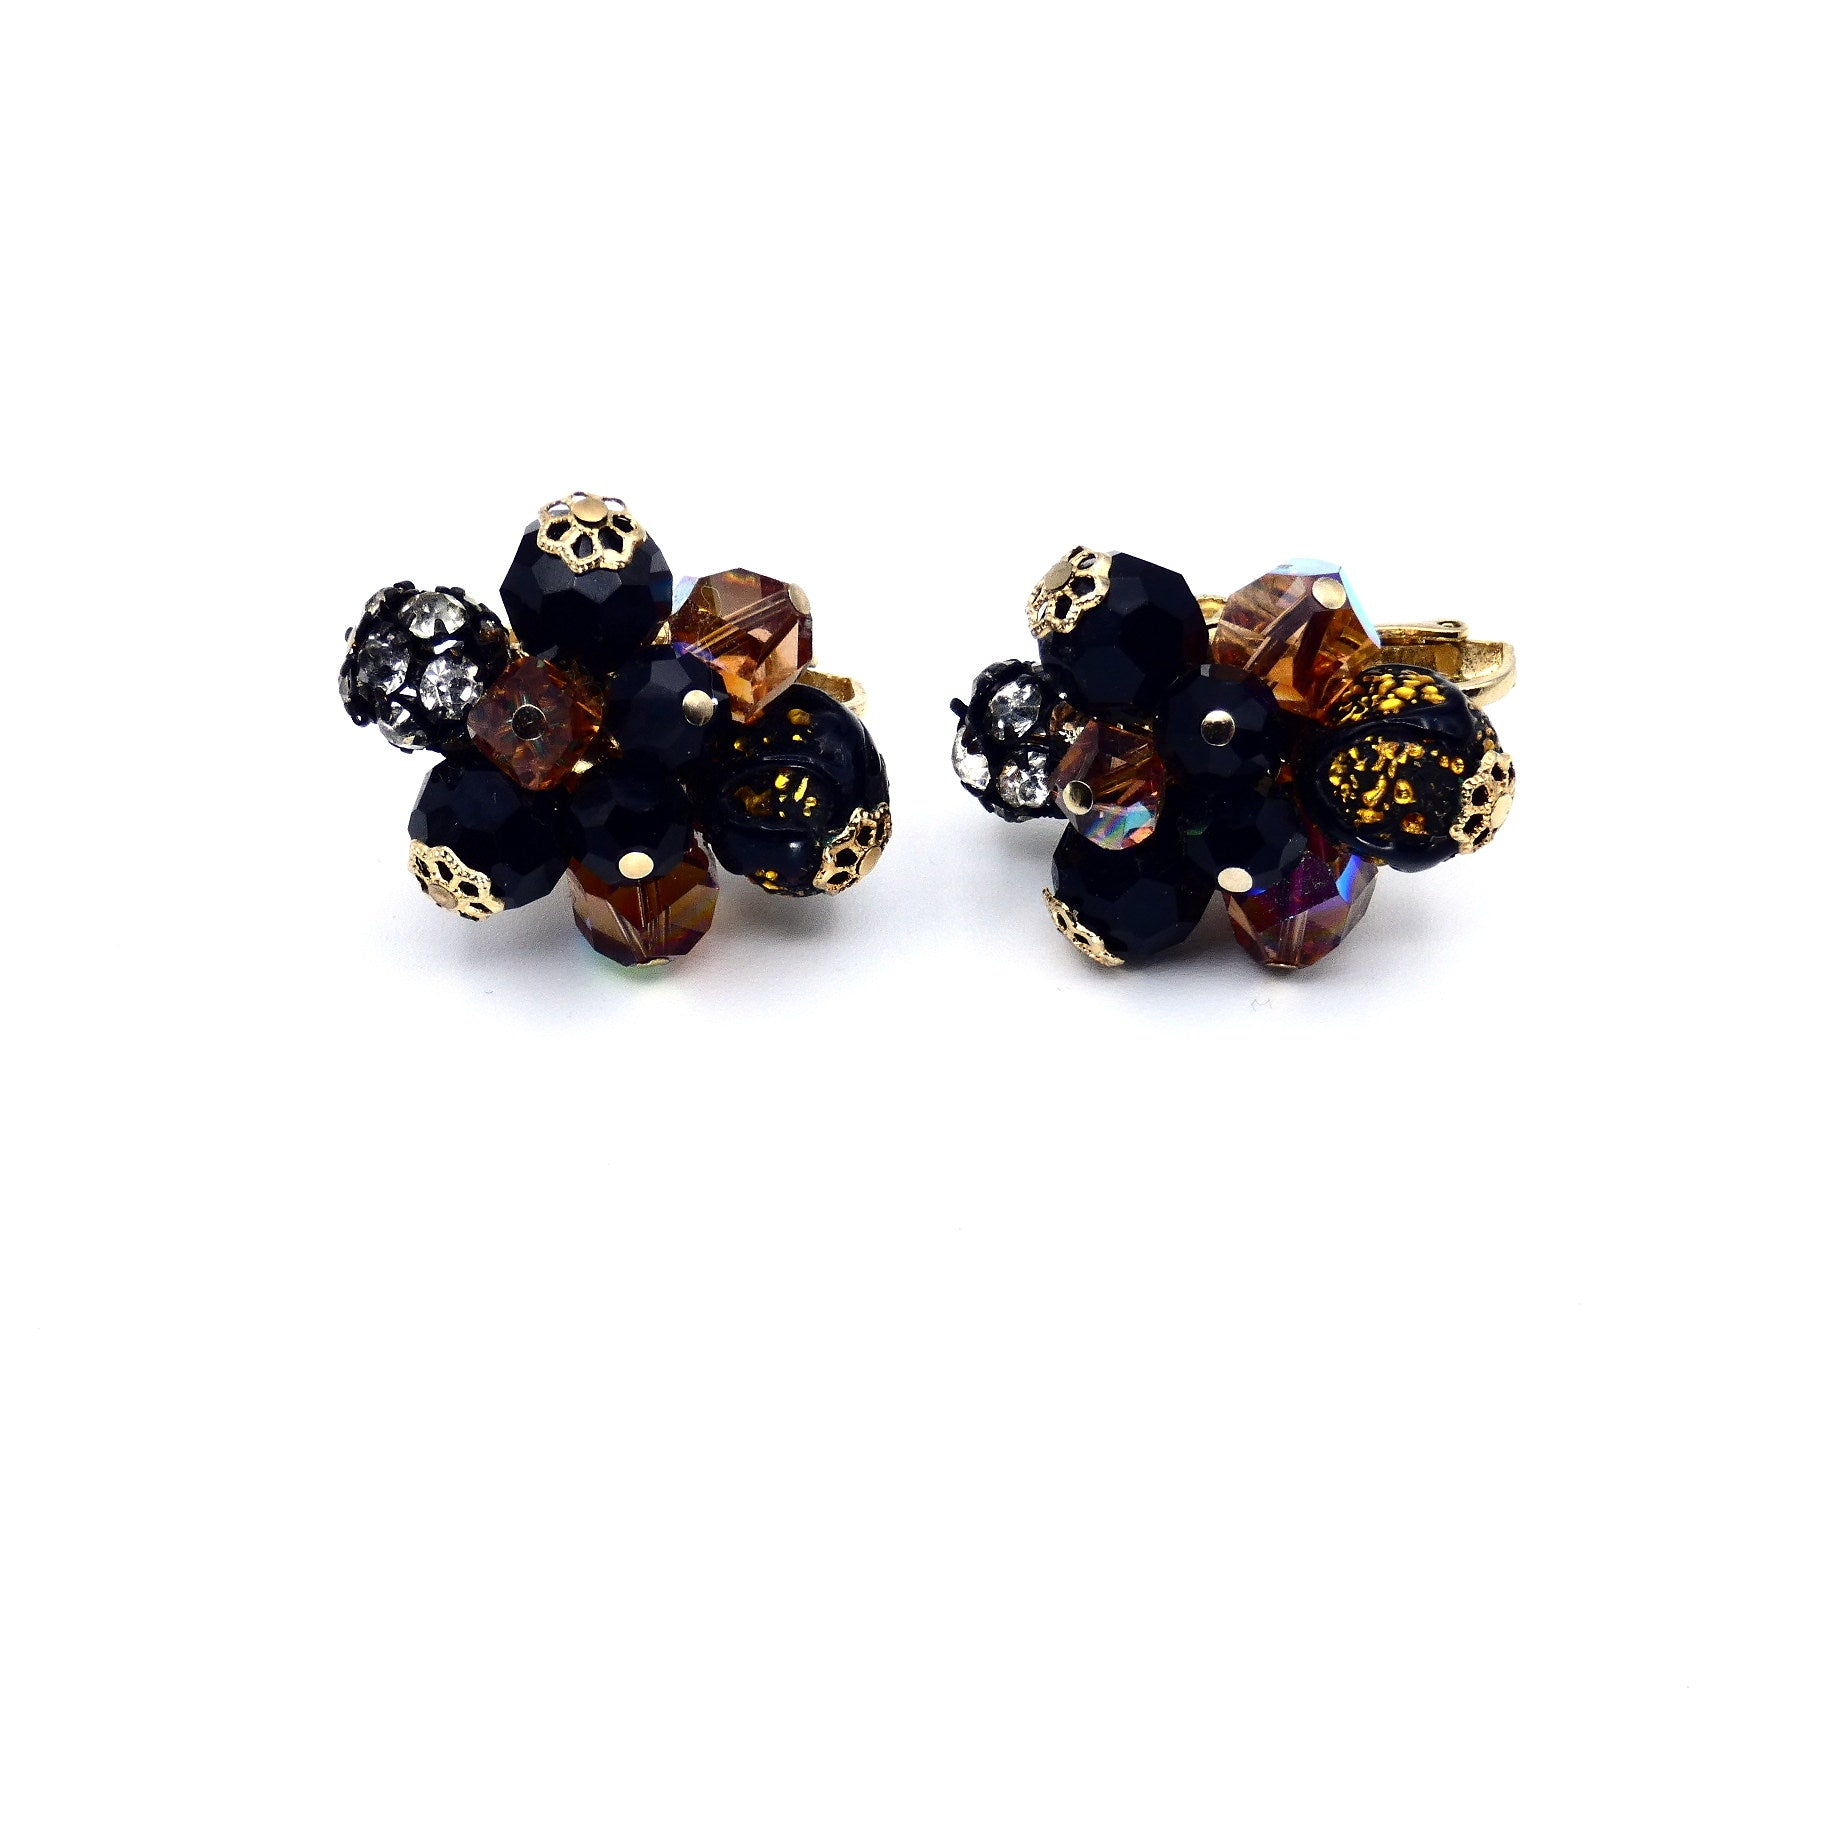 Mid Century Vendome Black Sputnik Period Clip-on Earrings